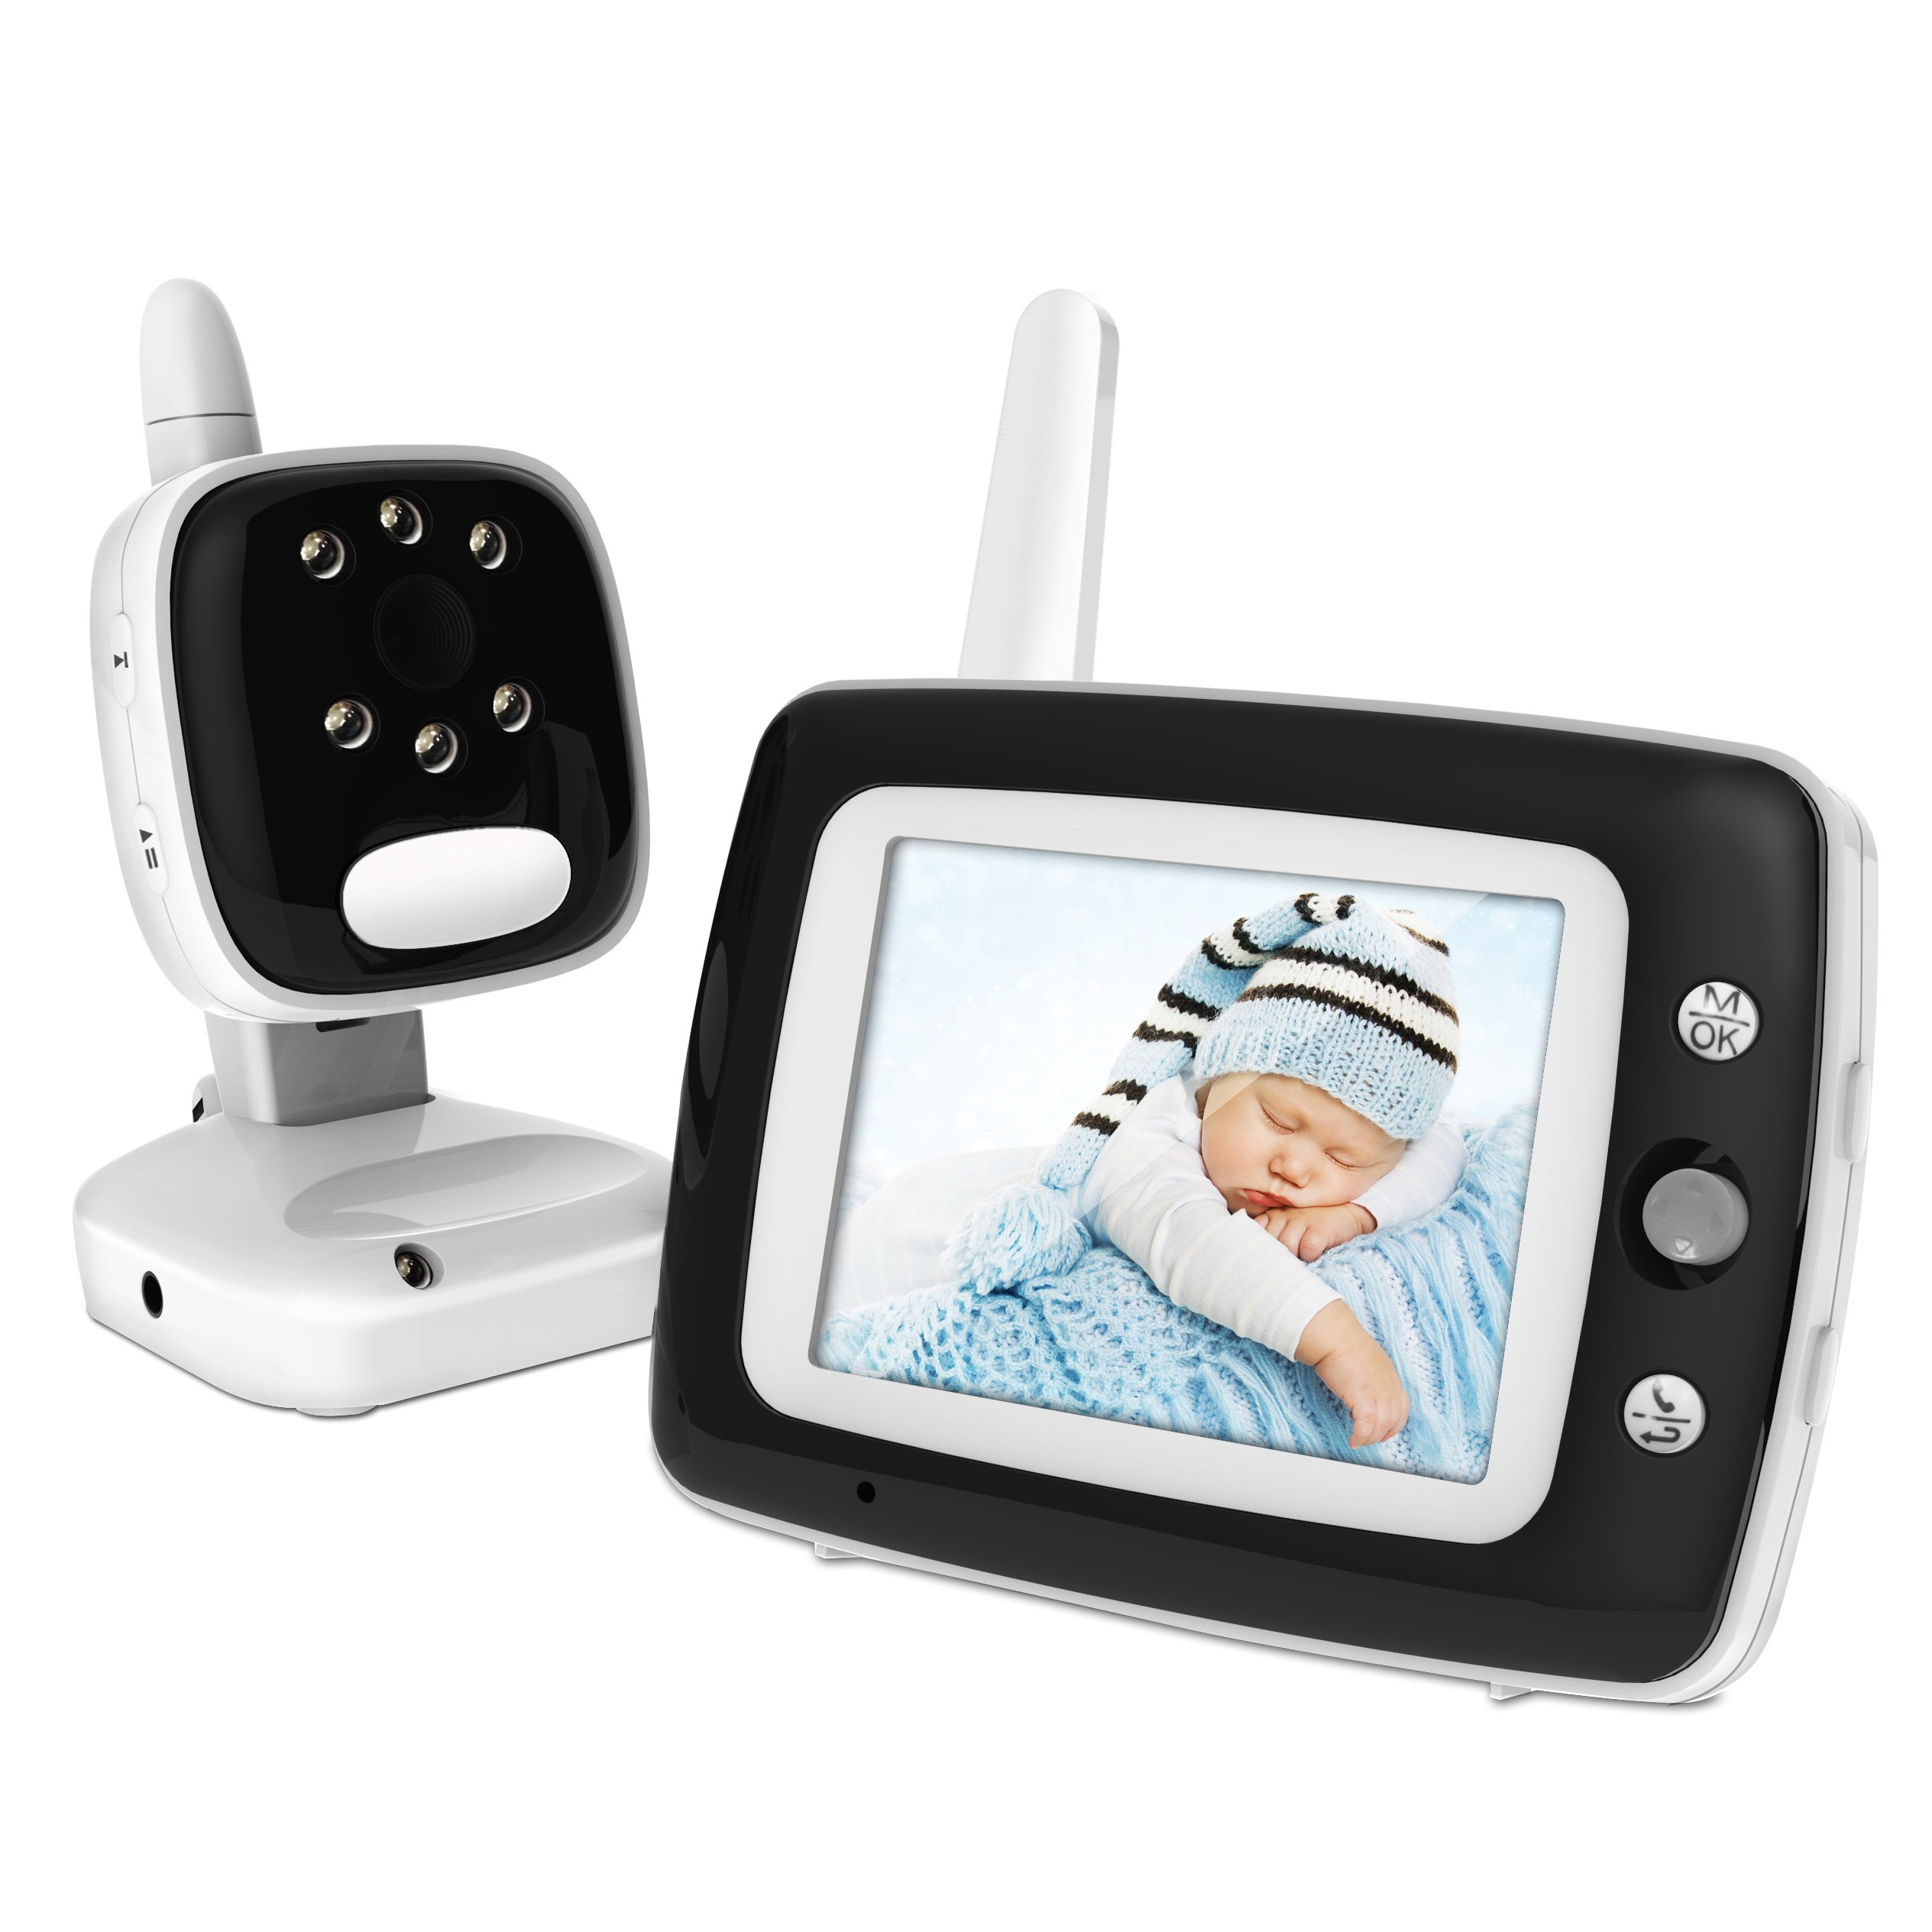 BESTHING Digital Baby Monitor with Camera - 3.5 Inch Color Screen, Long Range Wireless Monitoring, Night Vision, Soothing Lullabies, Two Way Audio, Temperature Display-Black by BESTHING